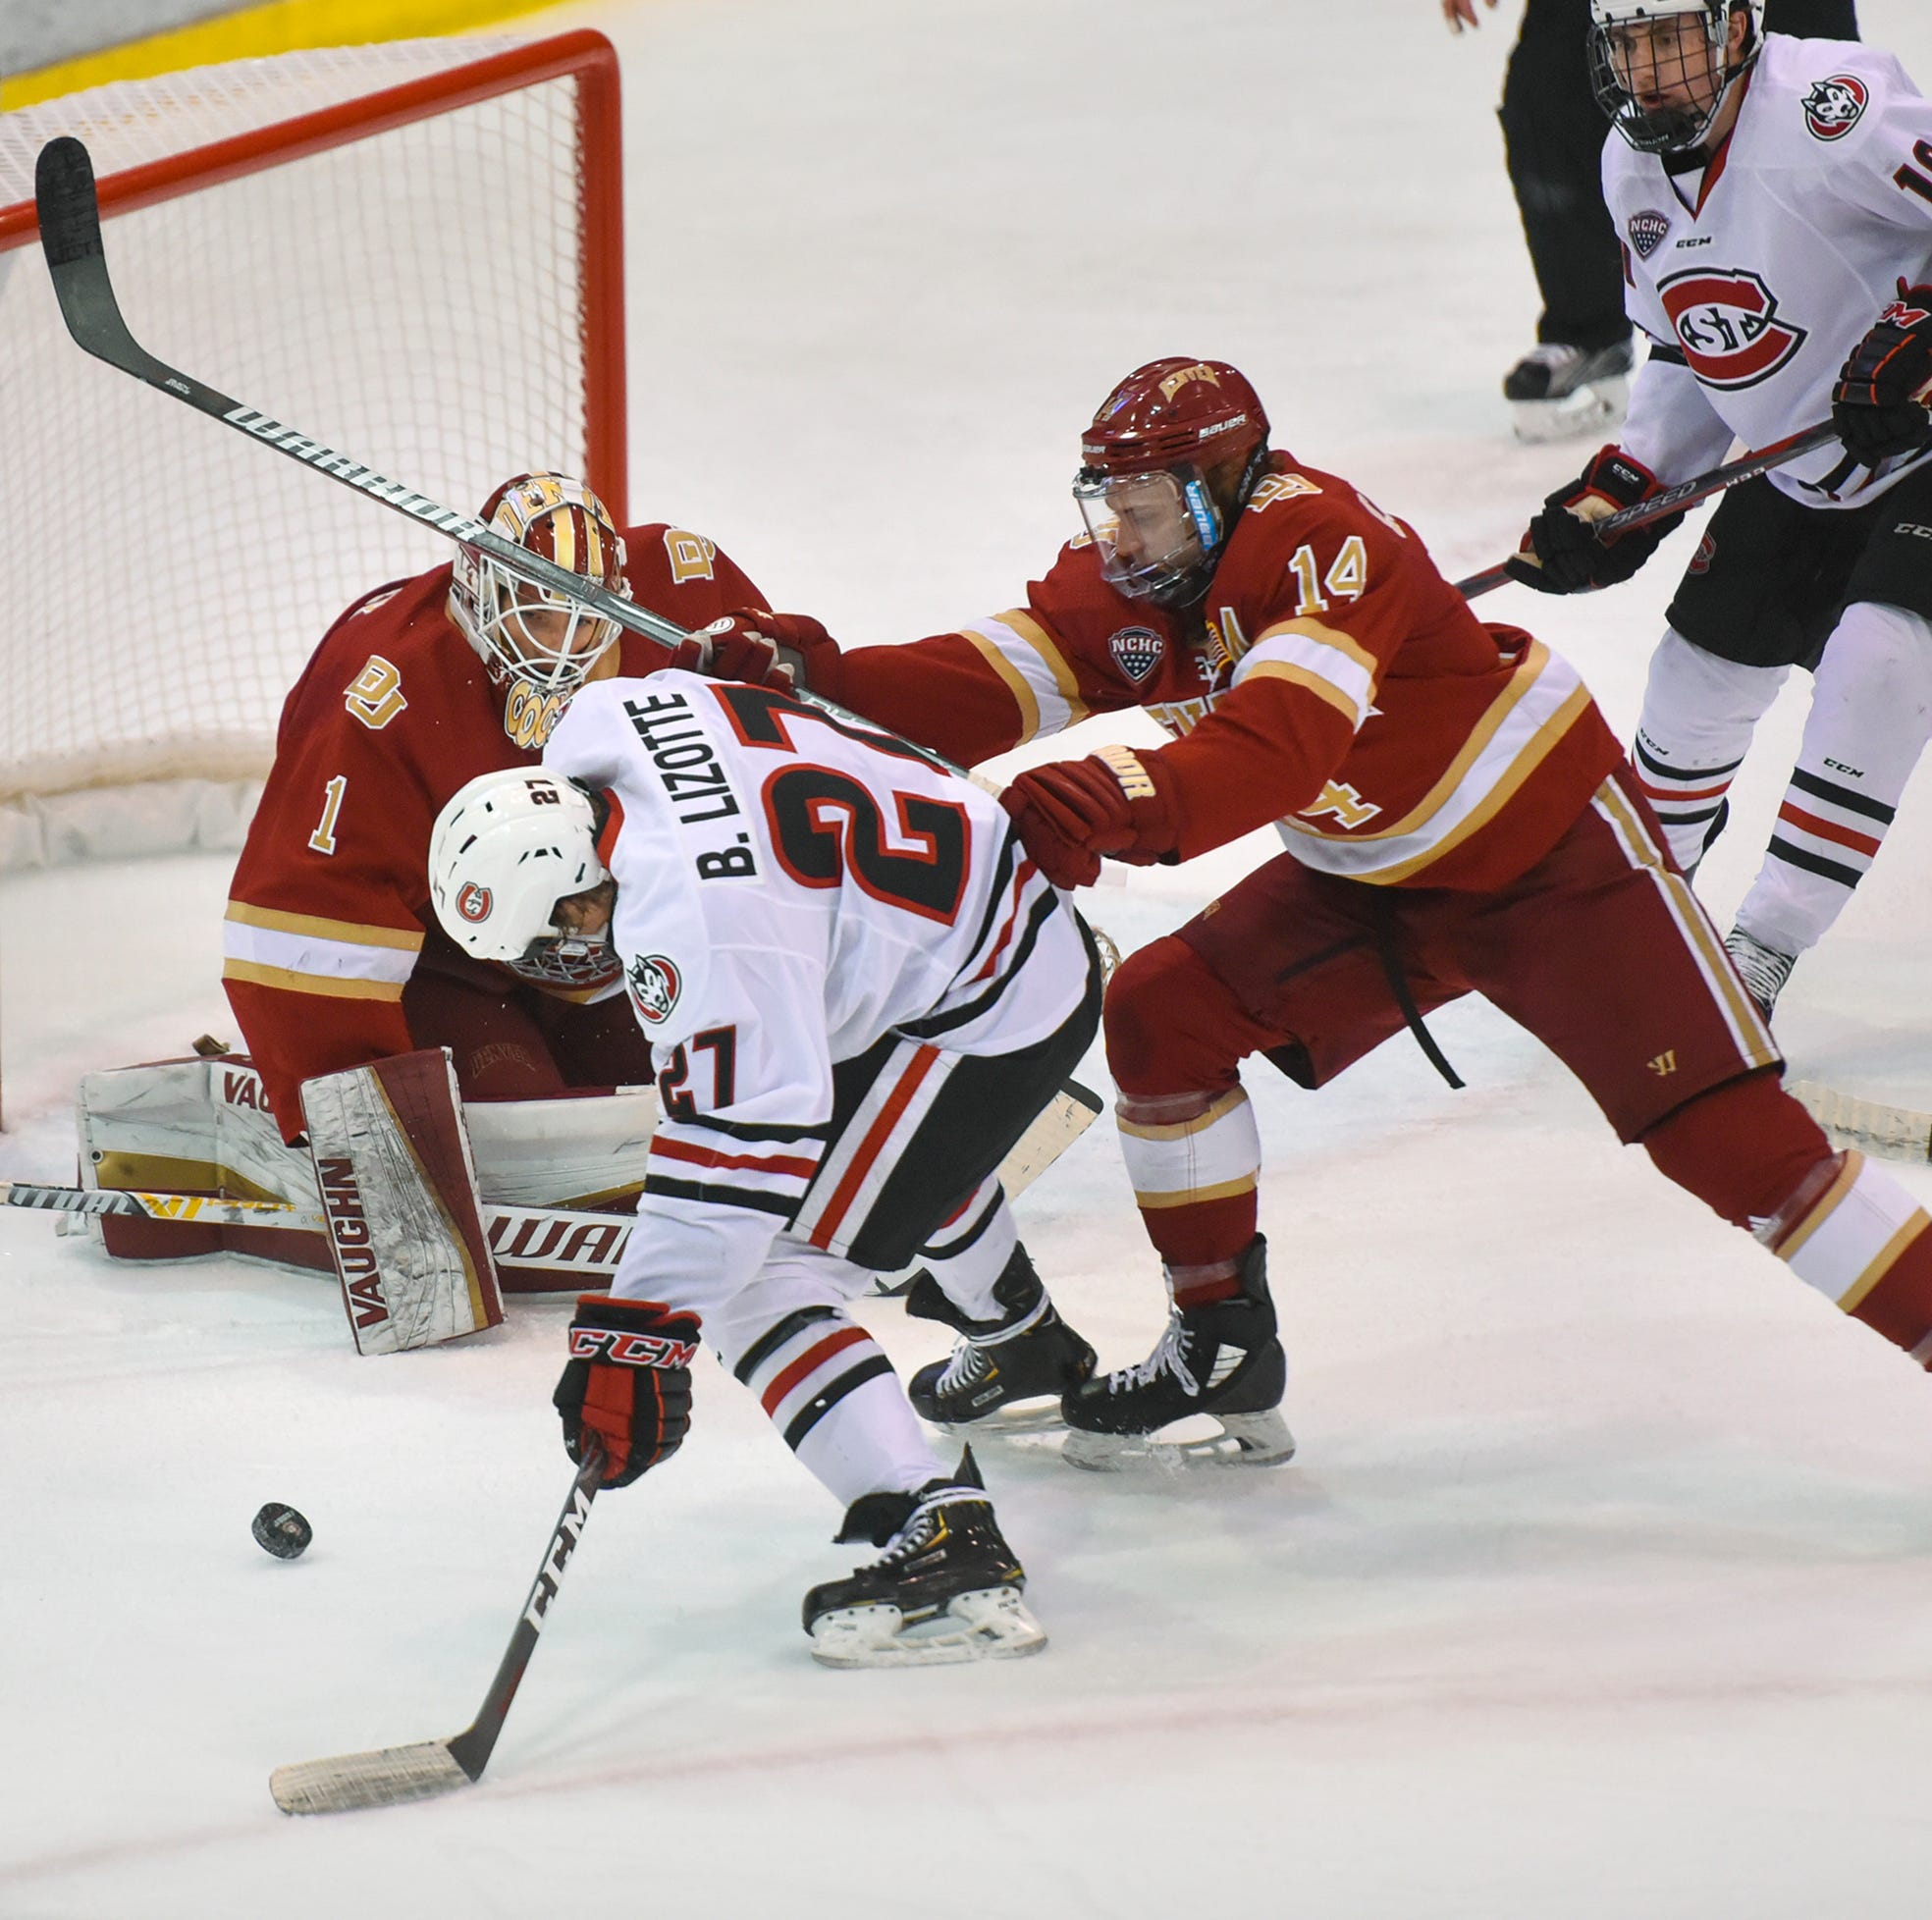 St. Cloud State Huskies win fourth come-from-behind victory in a row